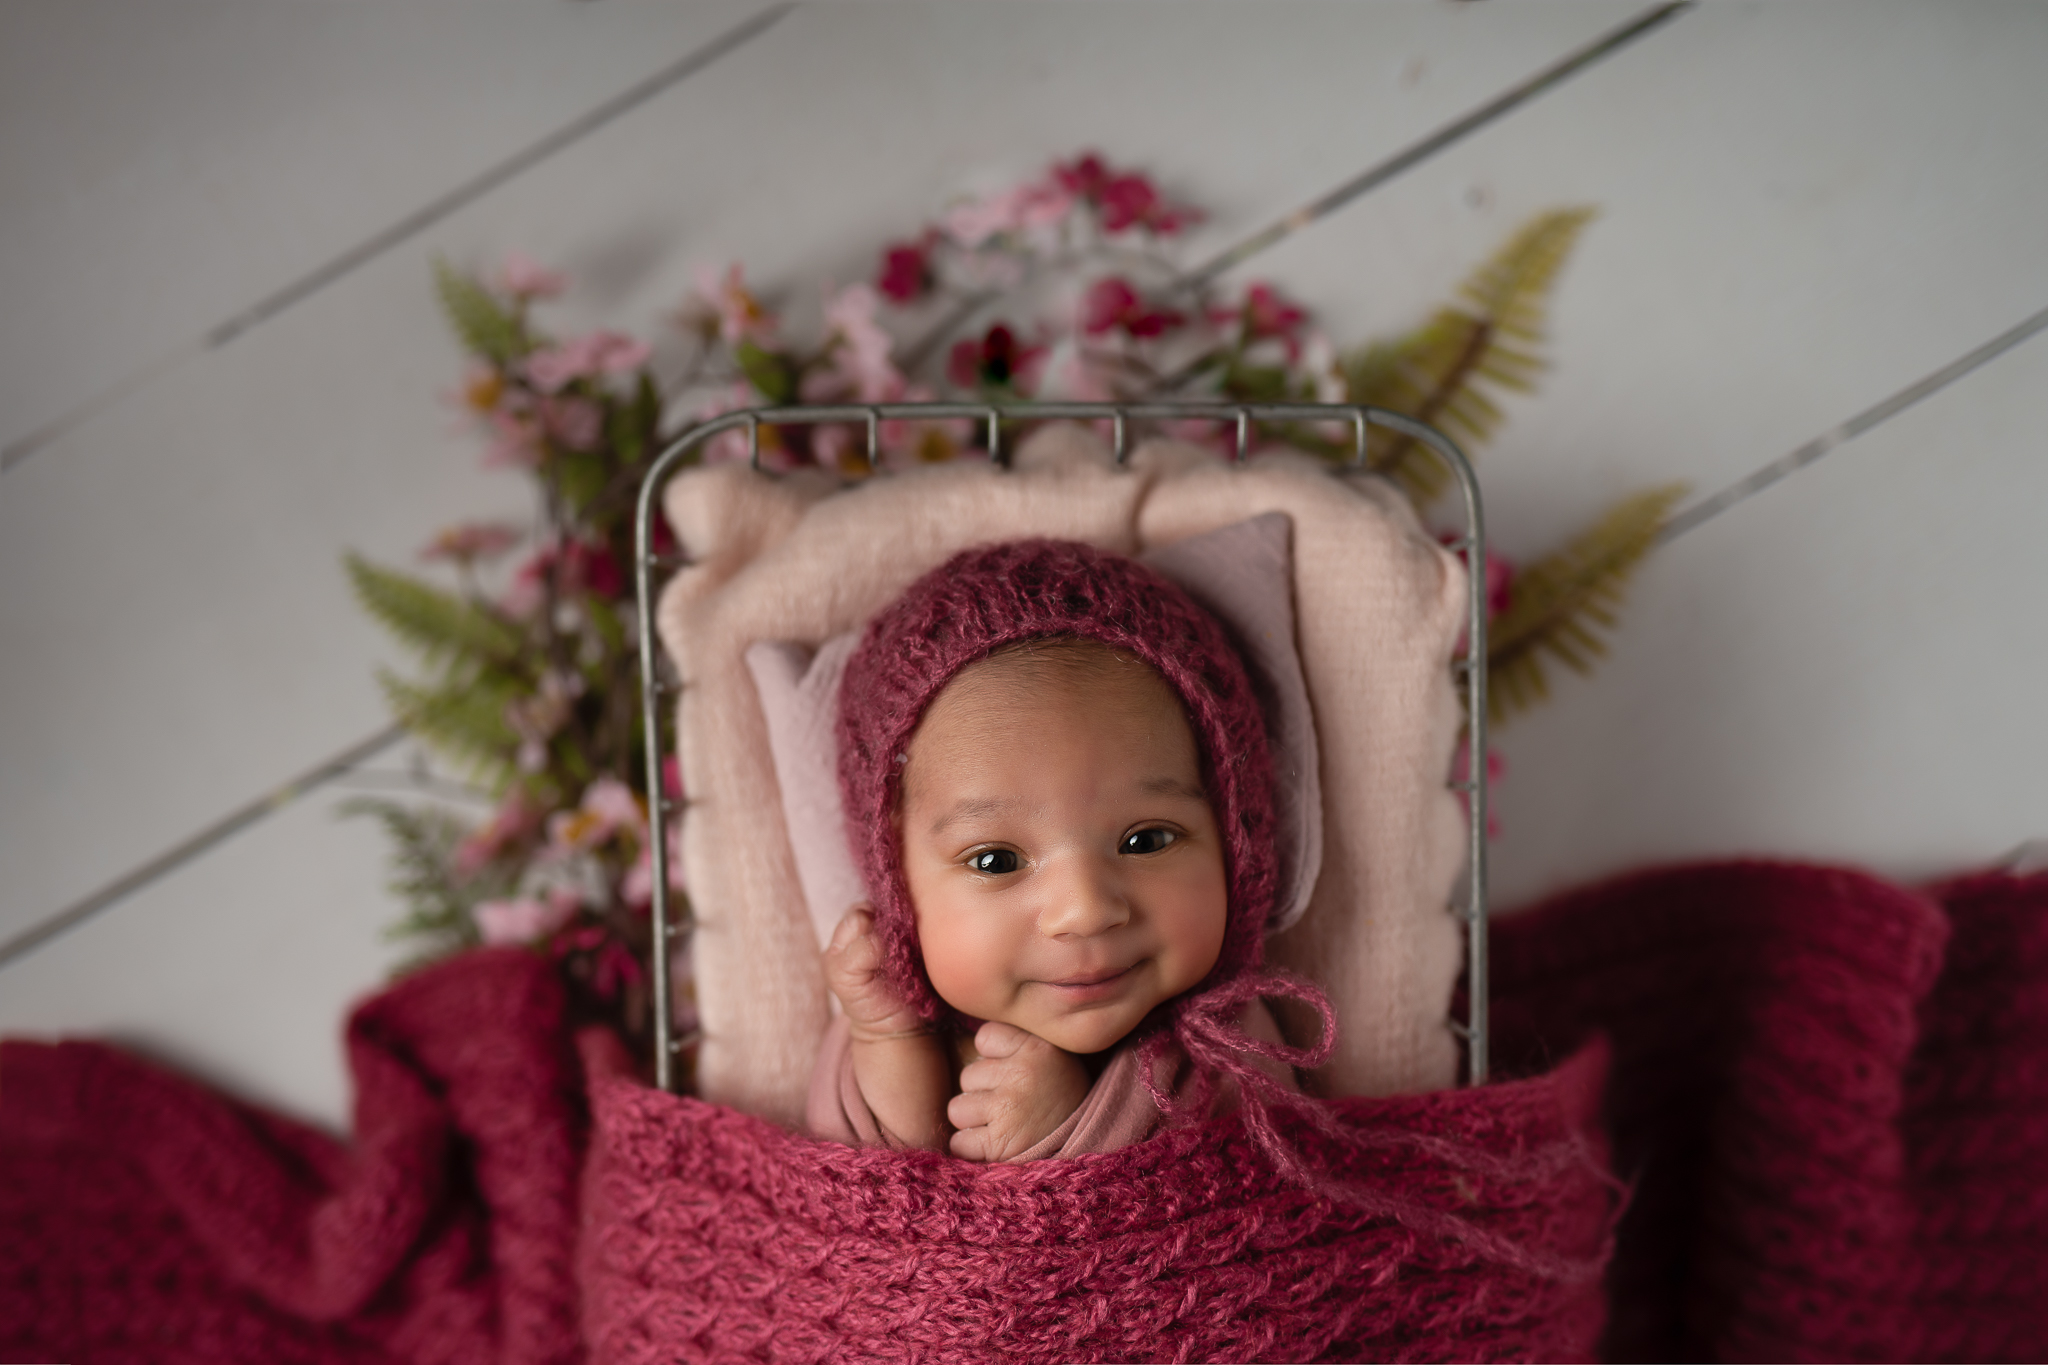 Newborn02NaomiLuciennePhotography032019-Edit.jpg